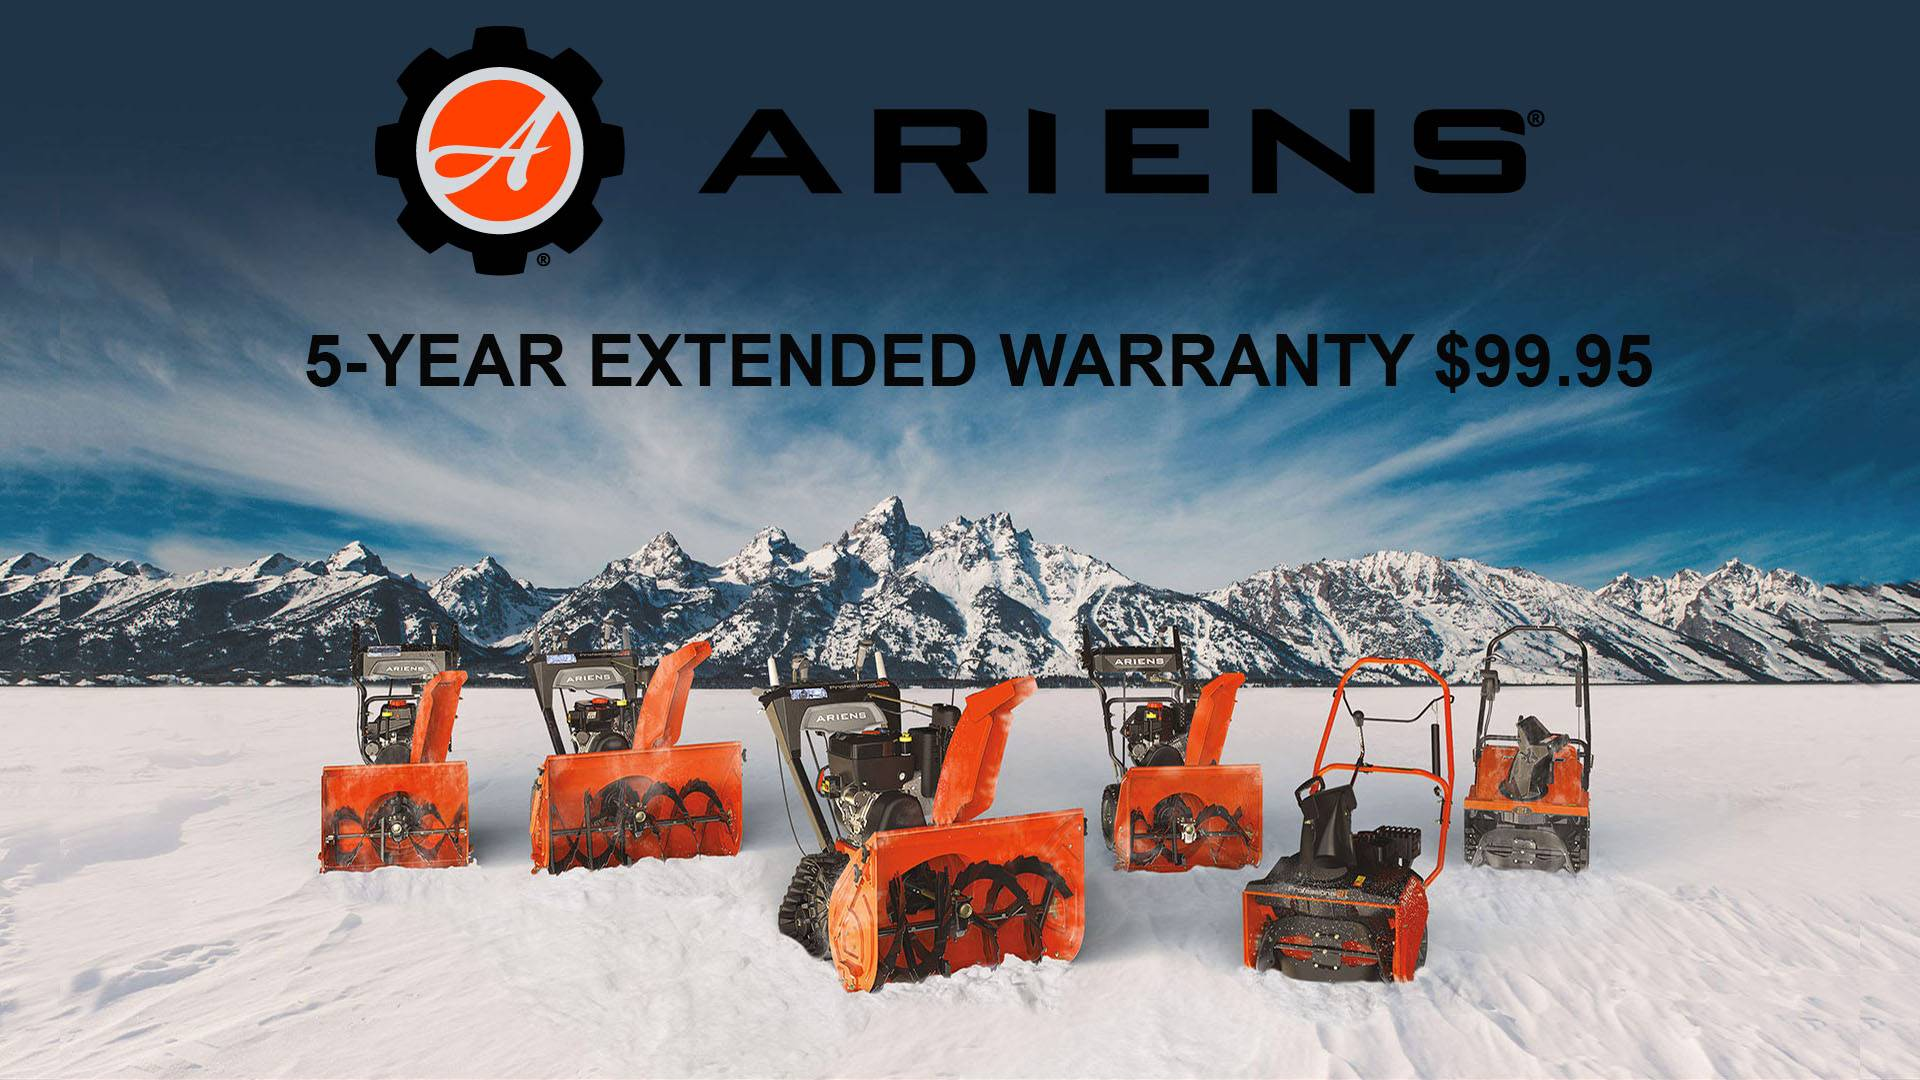 Ariens -5-Year Extended Warranty $99.95